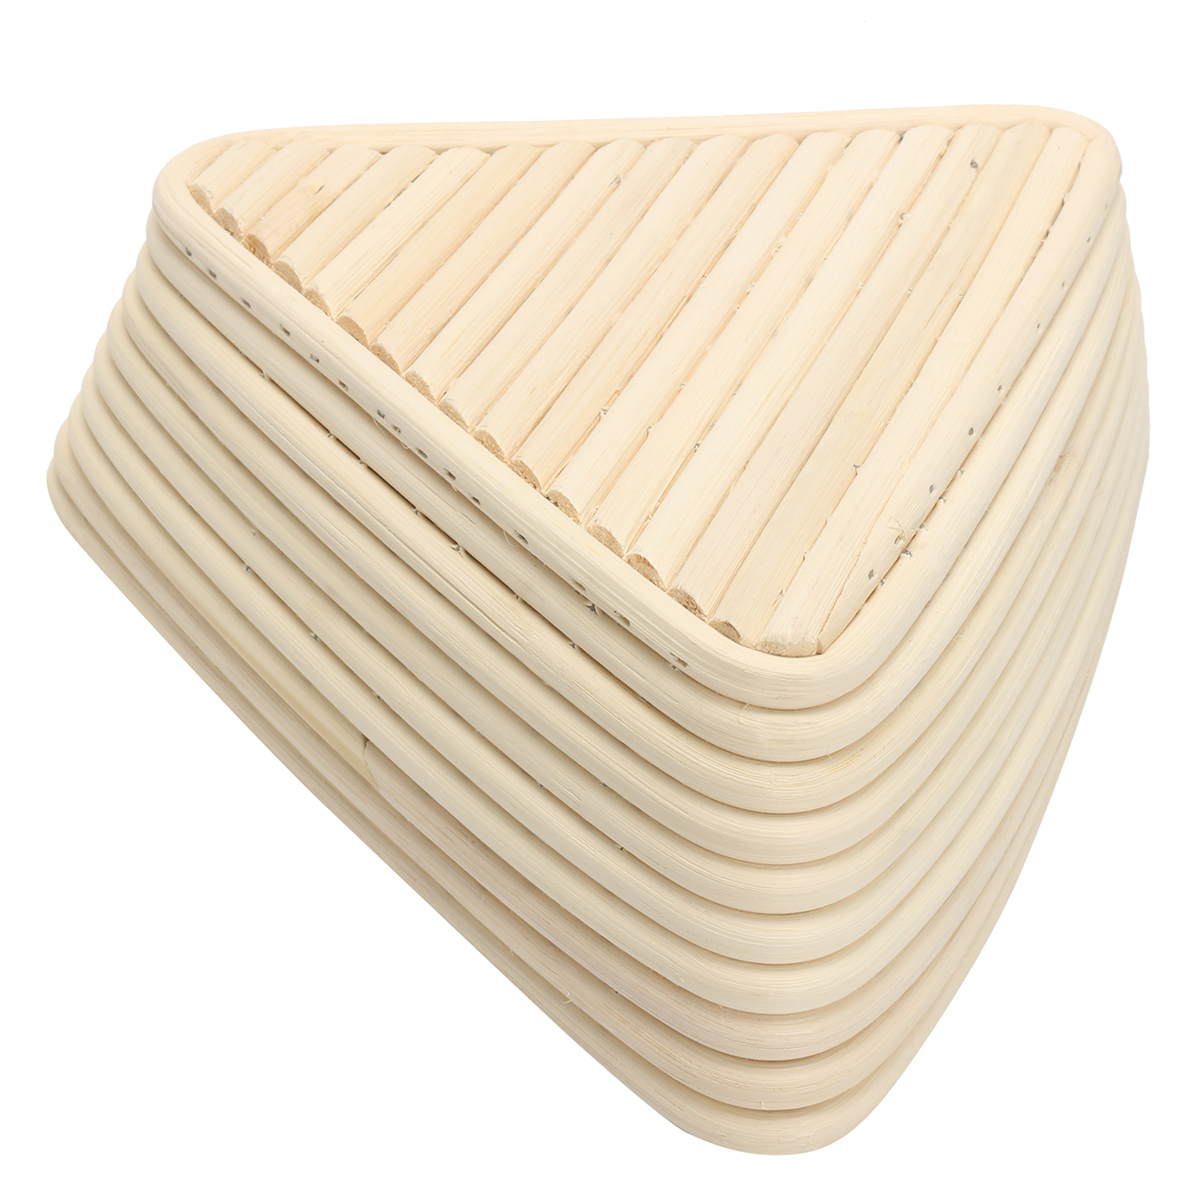 Triangle Banneton Brotform Rattan Basket Bread Dough Proofing Rising Loaf Proving 3 Sizes